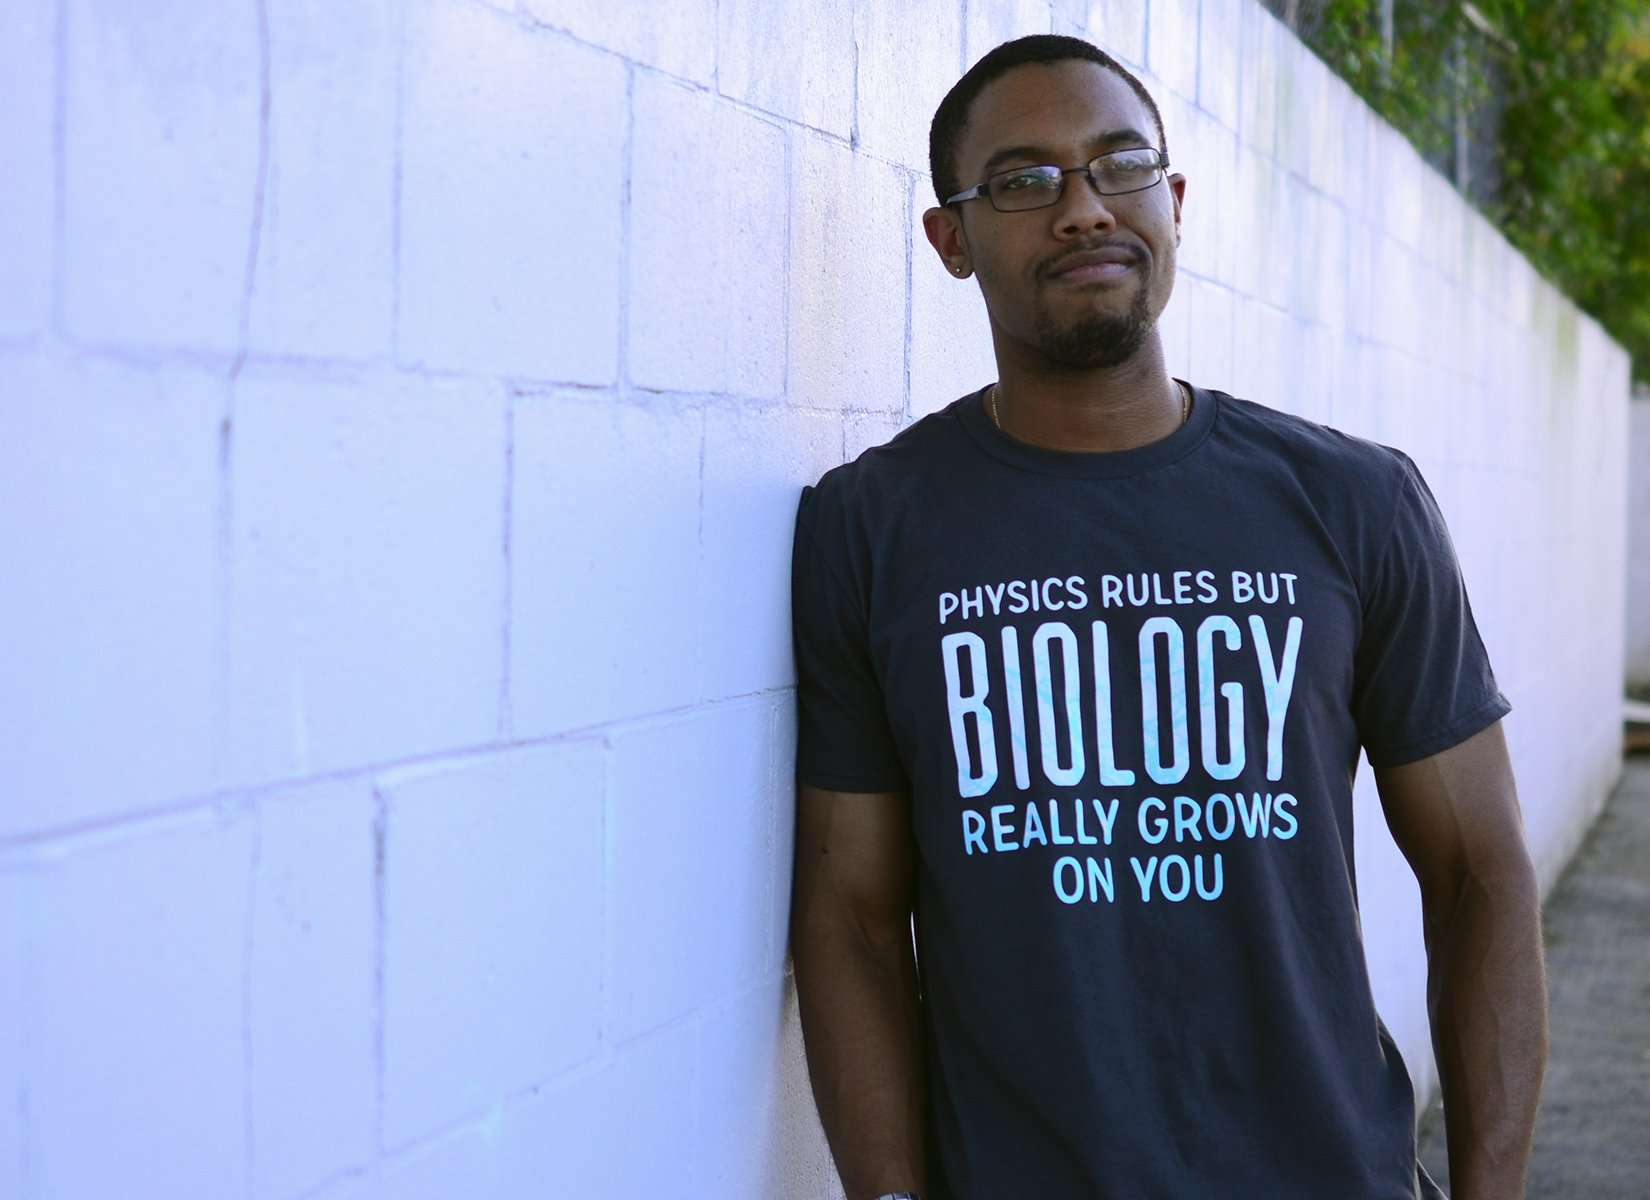 Biology Really Grows On You on Mens T-Shirt